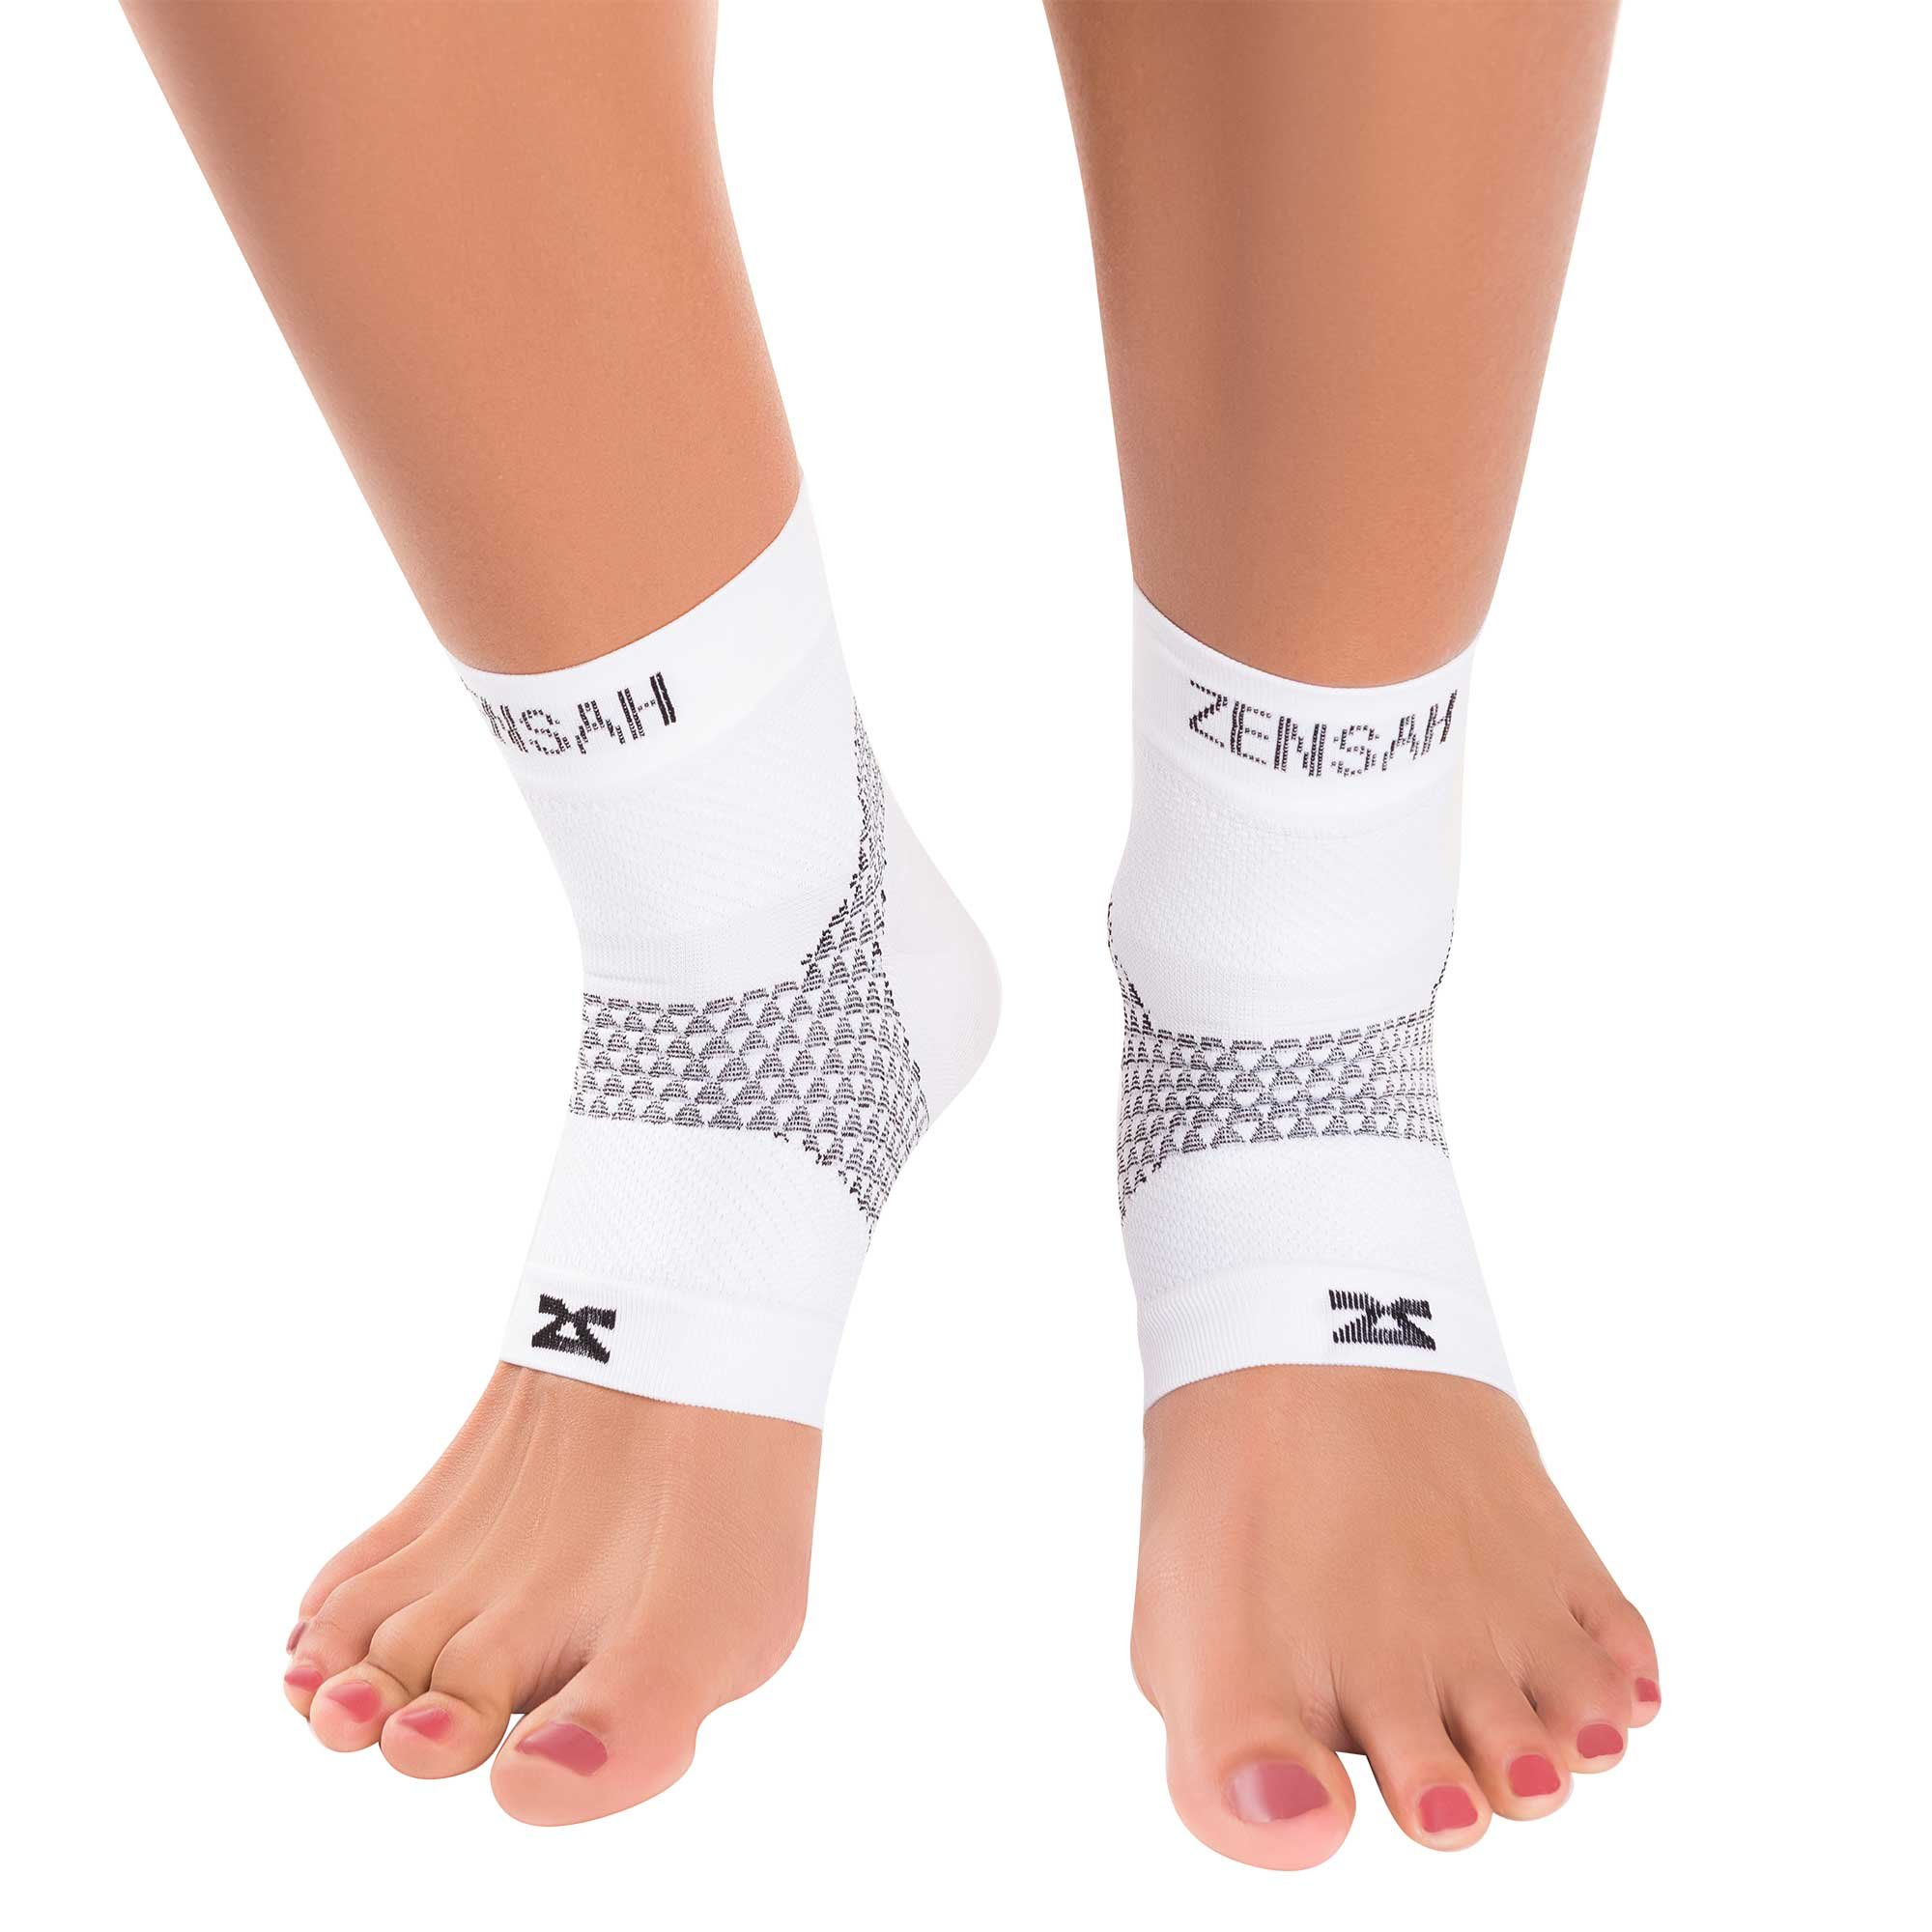 Zensah Plantar Fasciitis Sleeves (Pair) - Plantar Fasciitis Socks, Arch Support, Plantar Fasciitis Brace - Relieve Heel Pain, Arch Support, Small, White